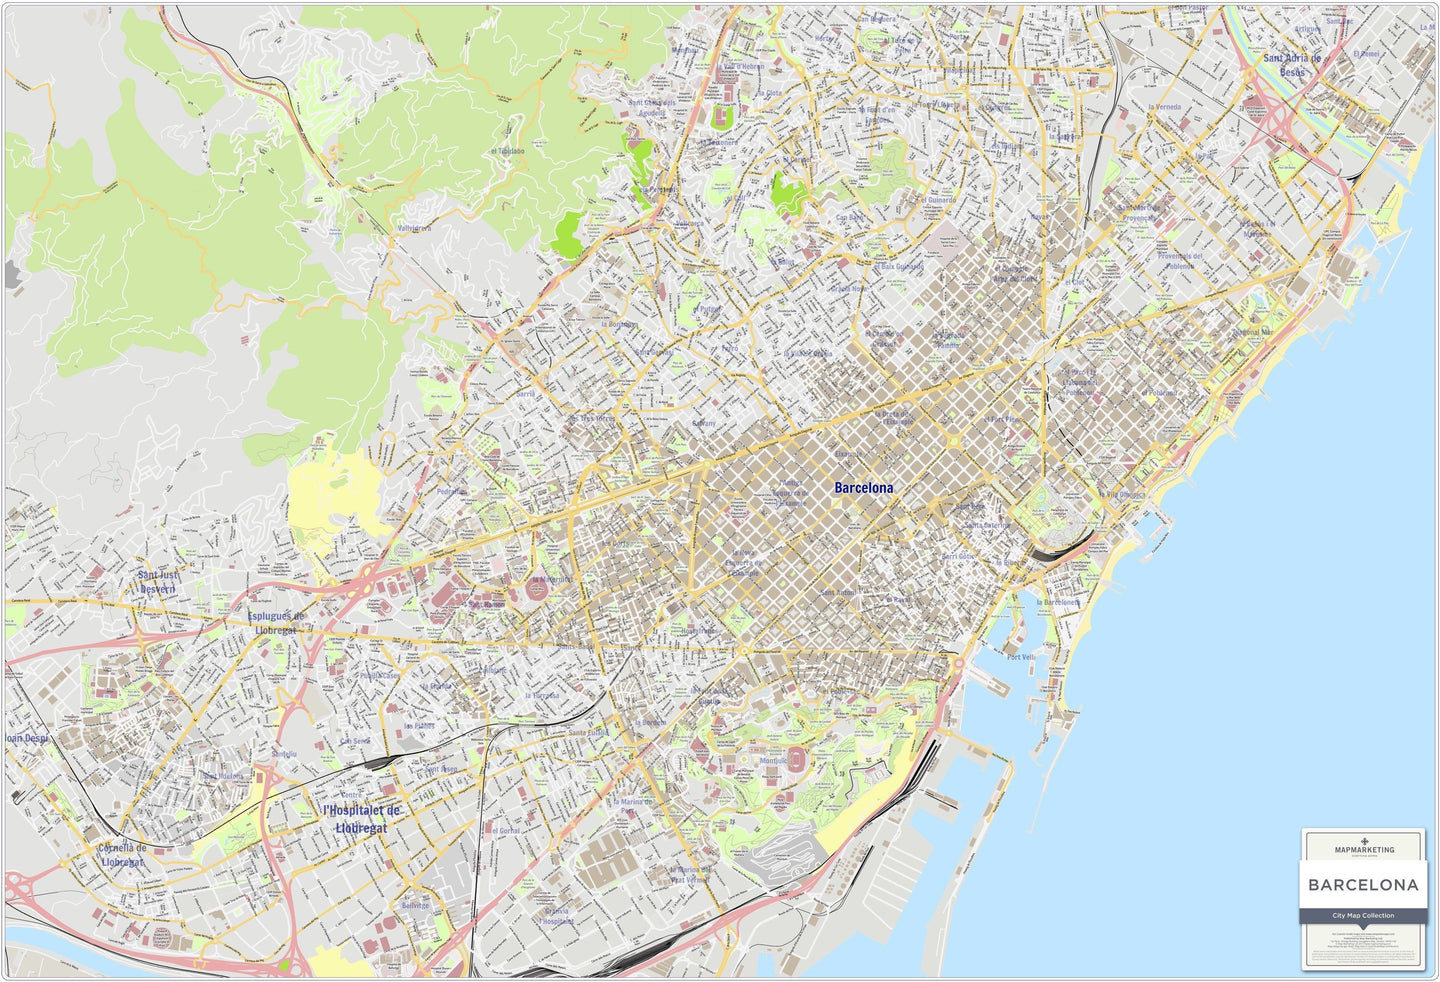 Wall Maps - Barcelona City Map - Laminated Wall Map